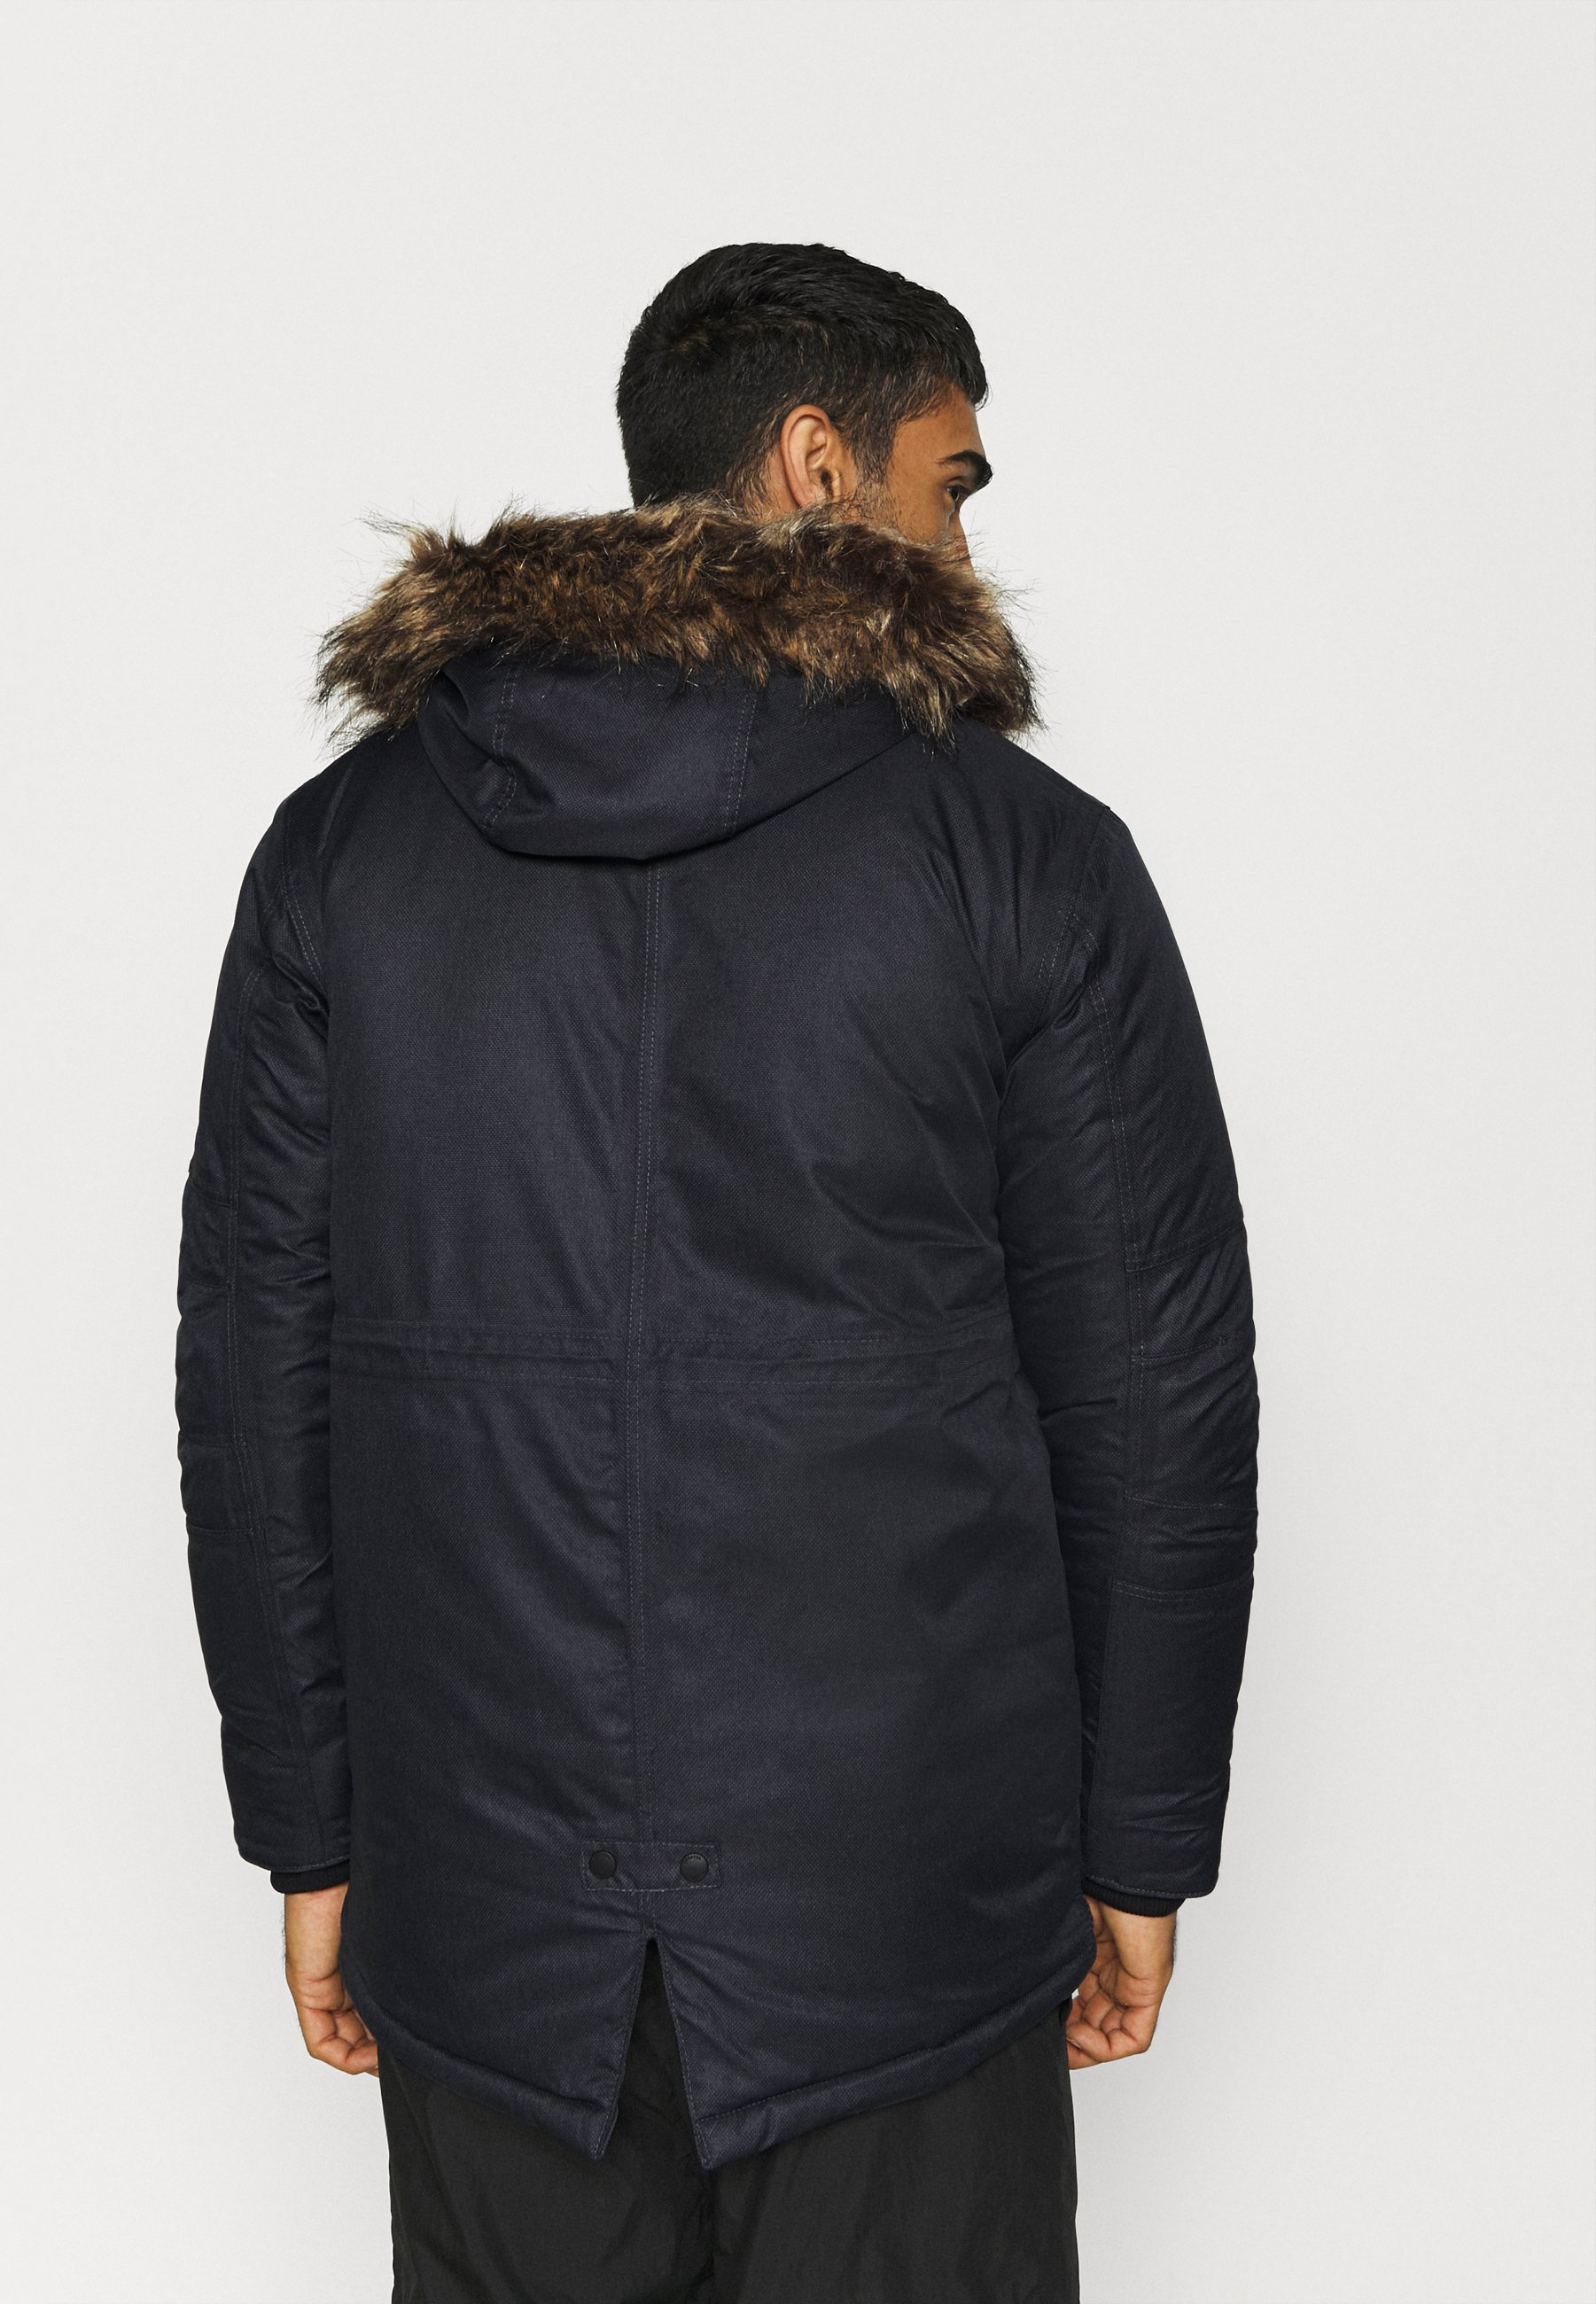 ADAIR Winterjacke ash